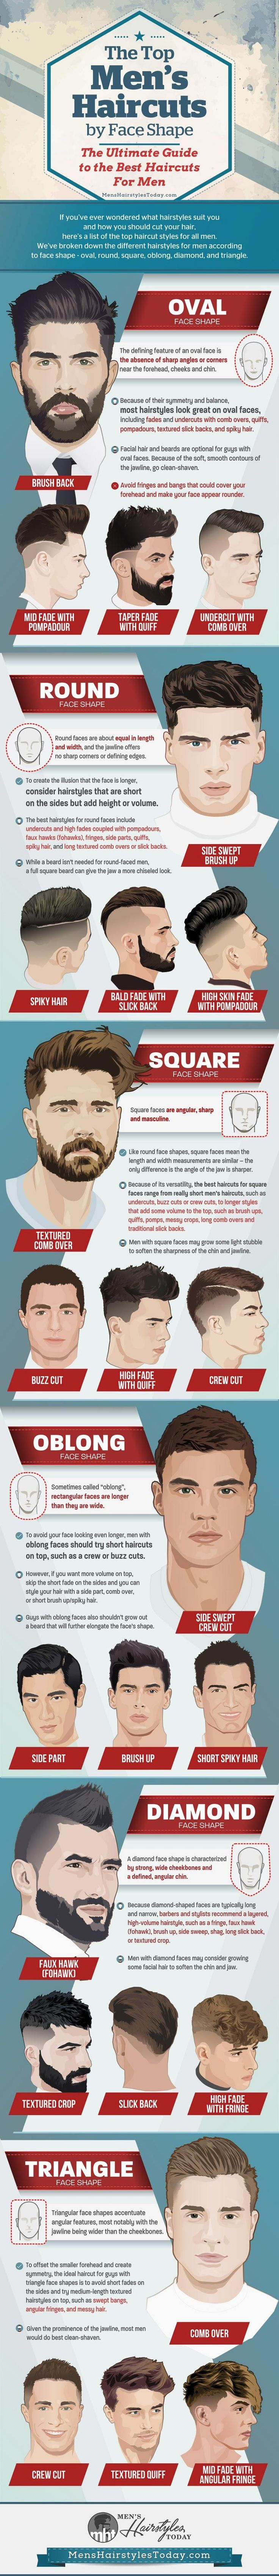 2272 best Mens hairstyles images on Pinterest